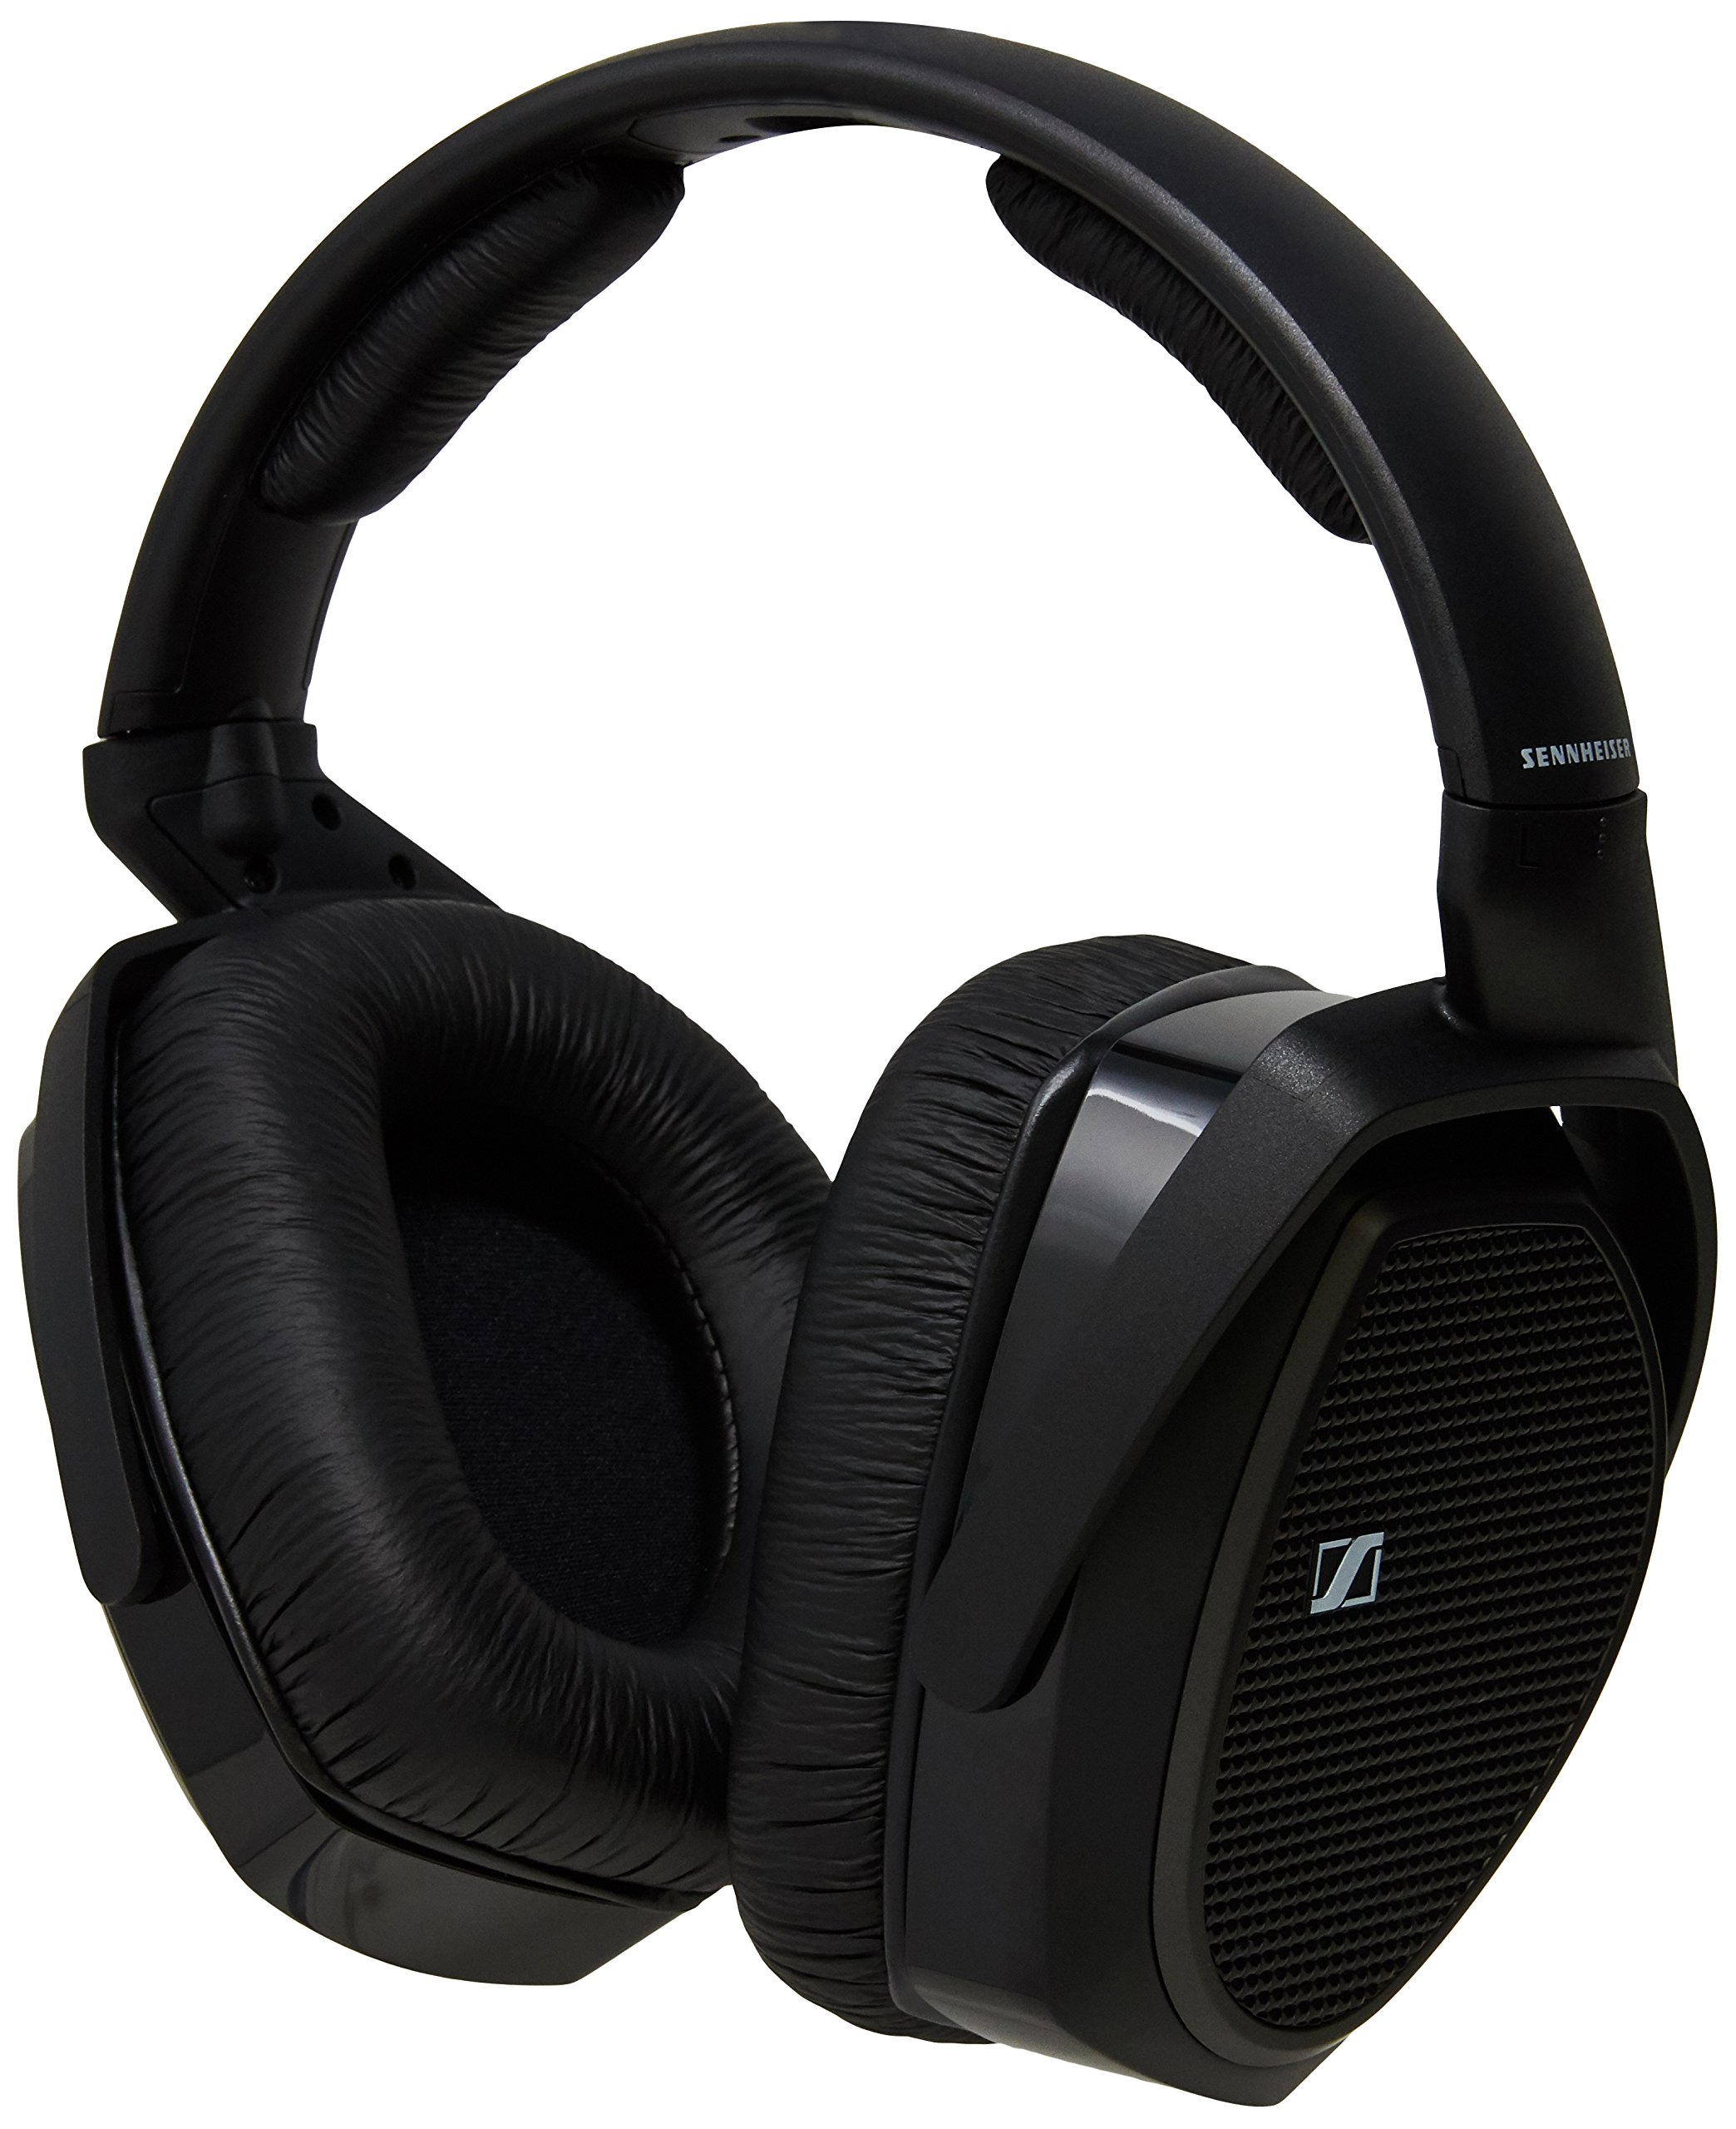 Sennheiser HDR 175 Accessory RF Wireless Headphone for RS 175 System by Sennheiser